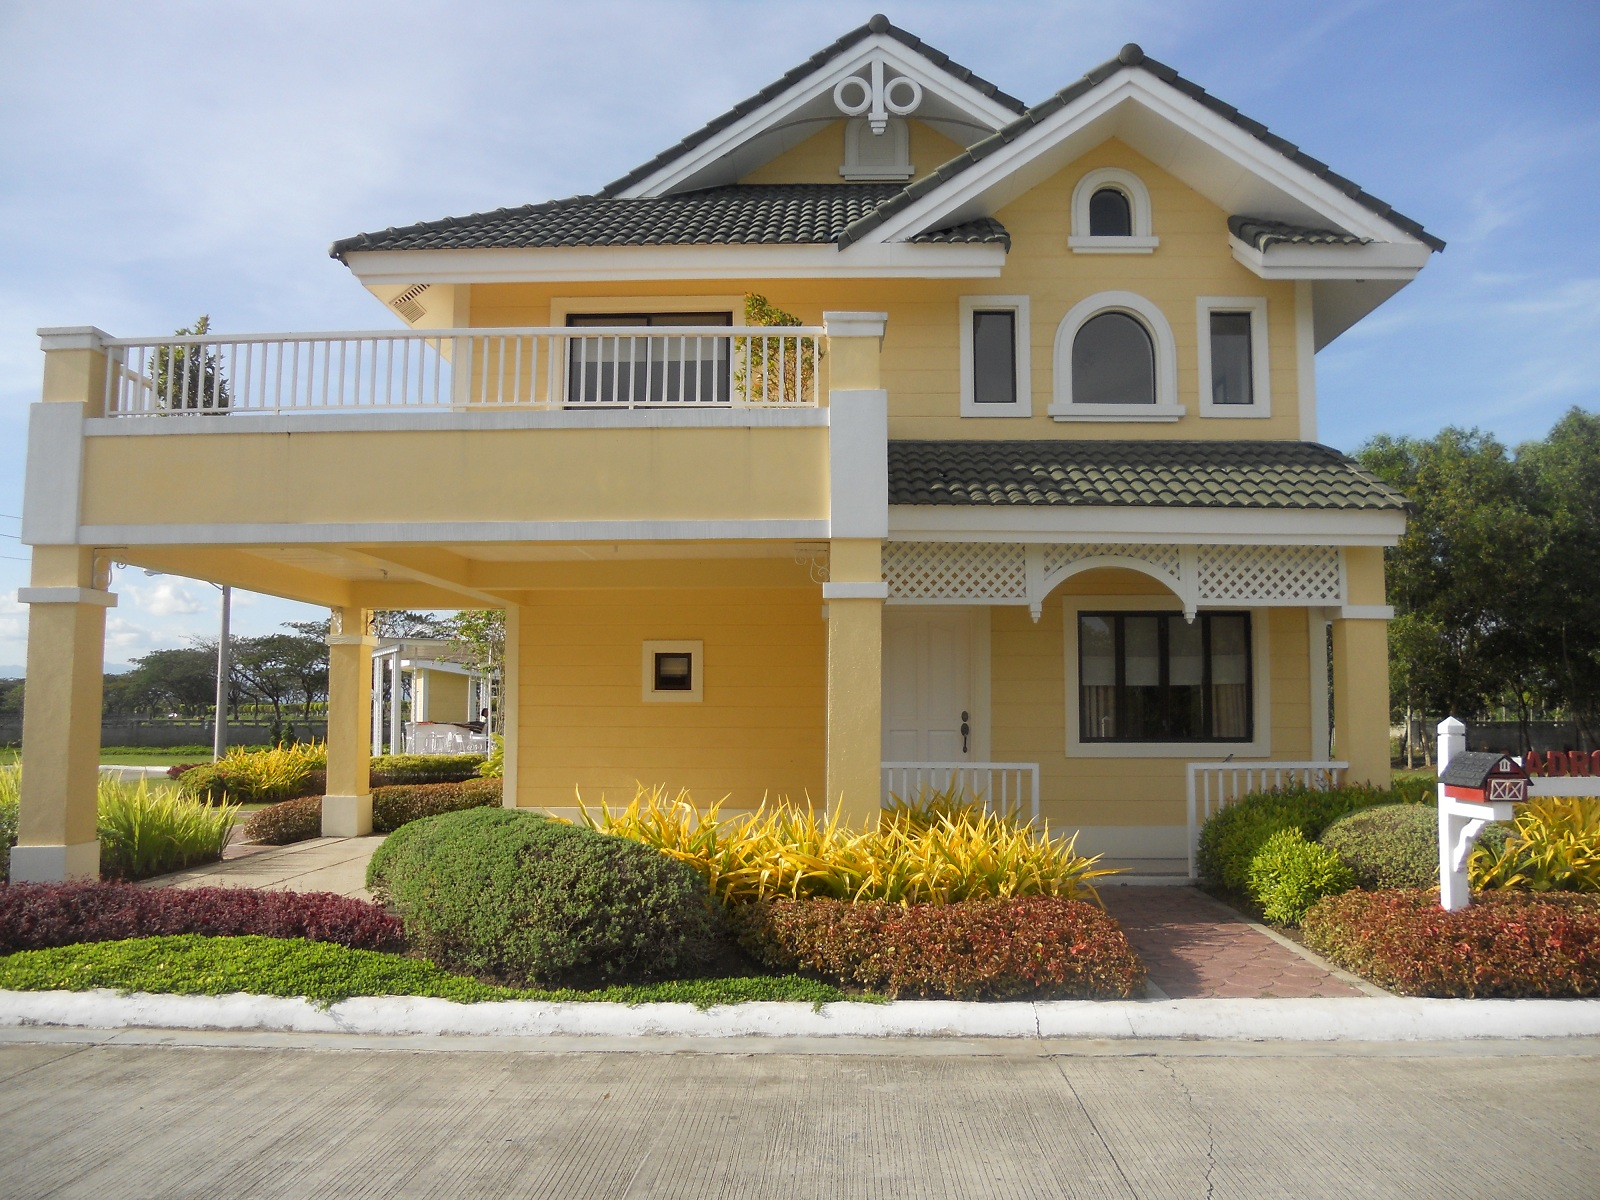 Lladro model house of savannah crest iloilo by camella Model plans for house